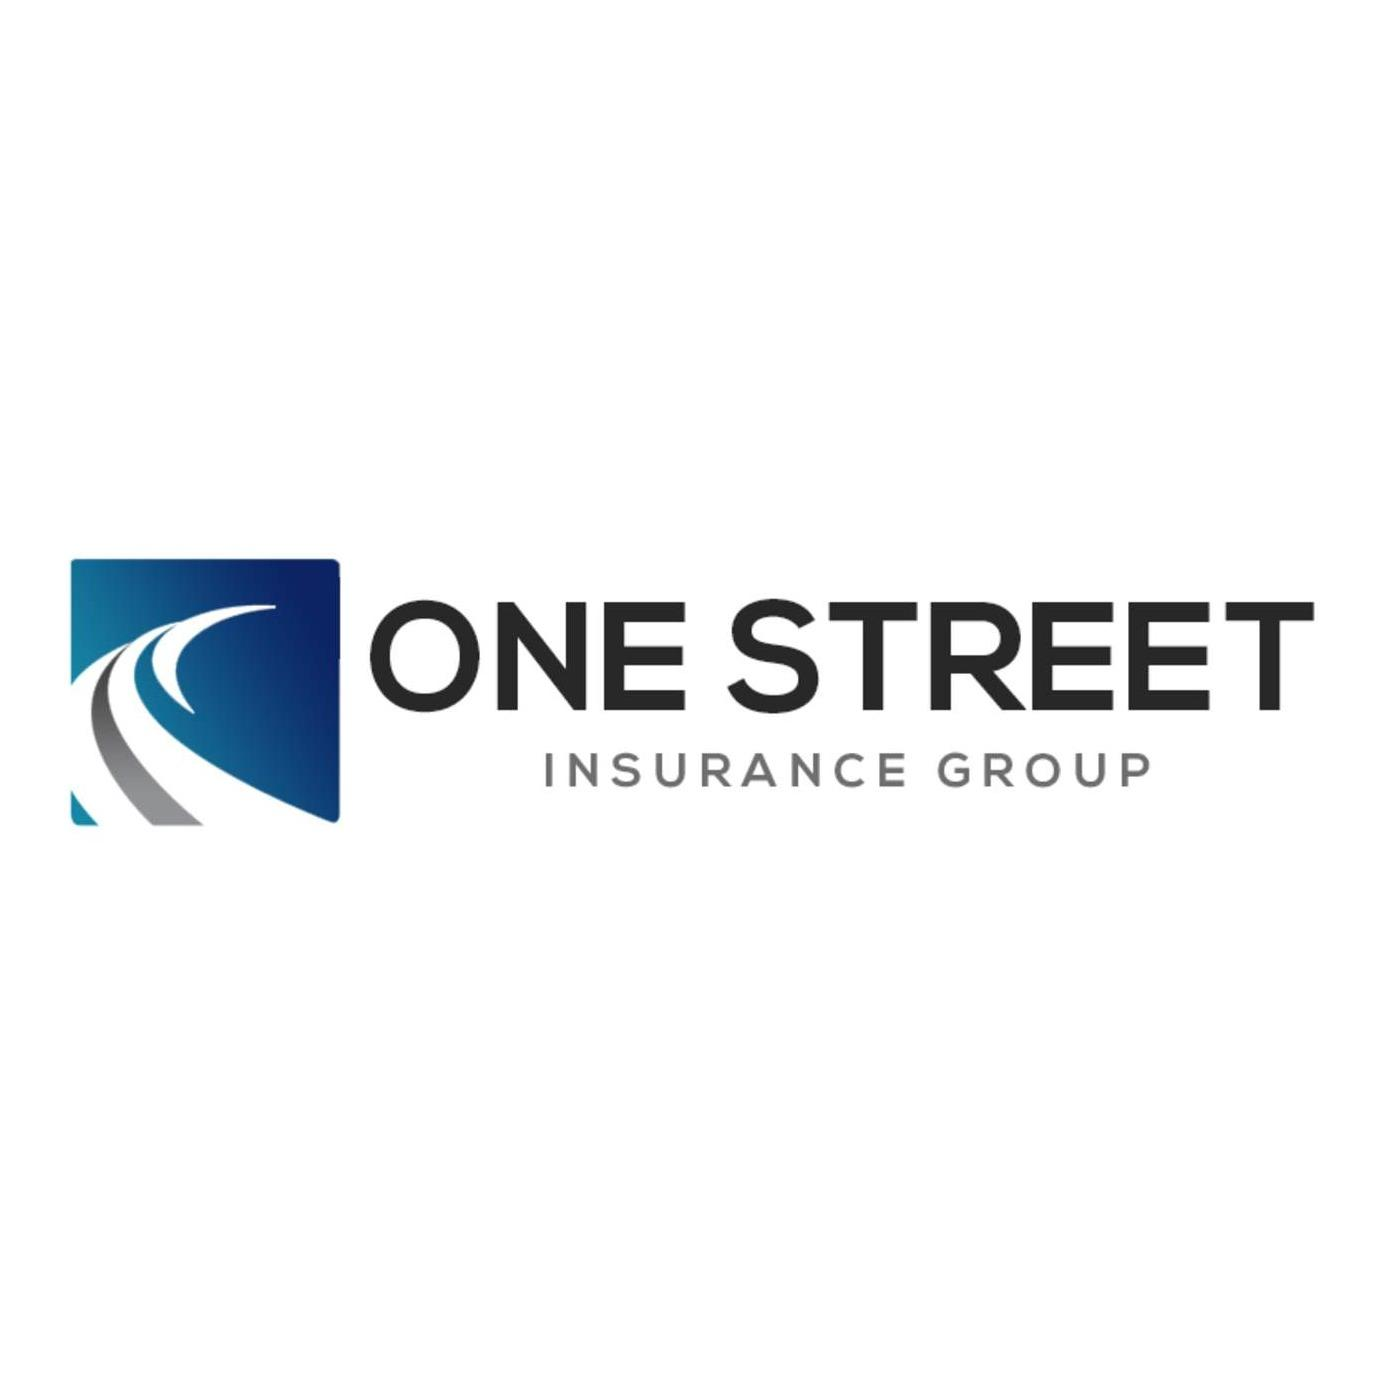 One Street Insurance Group